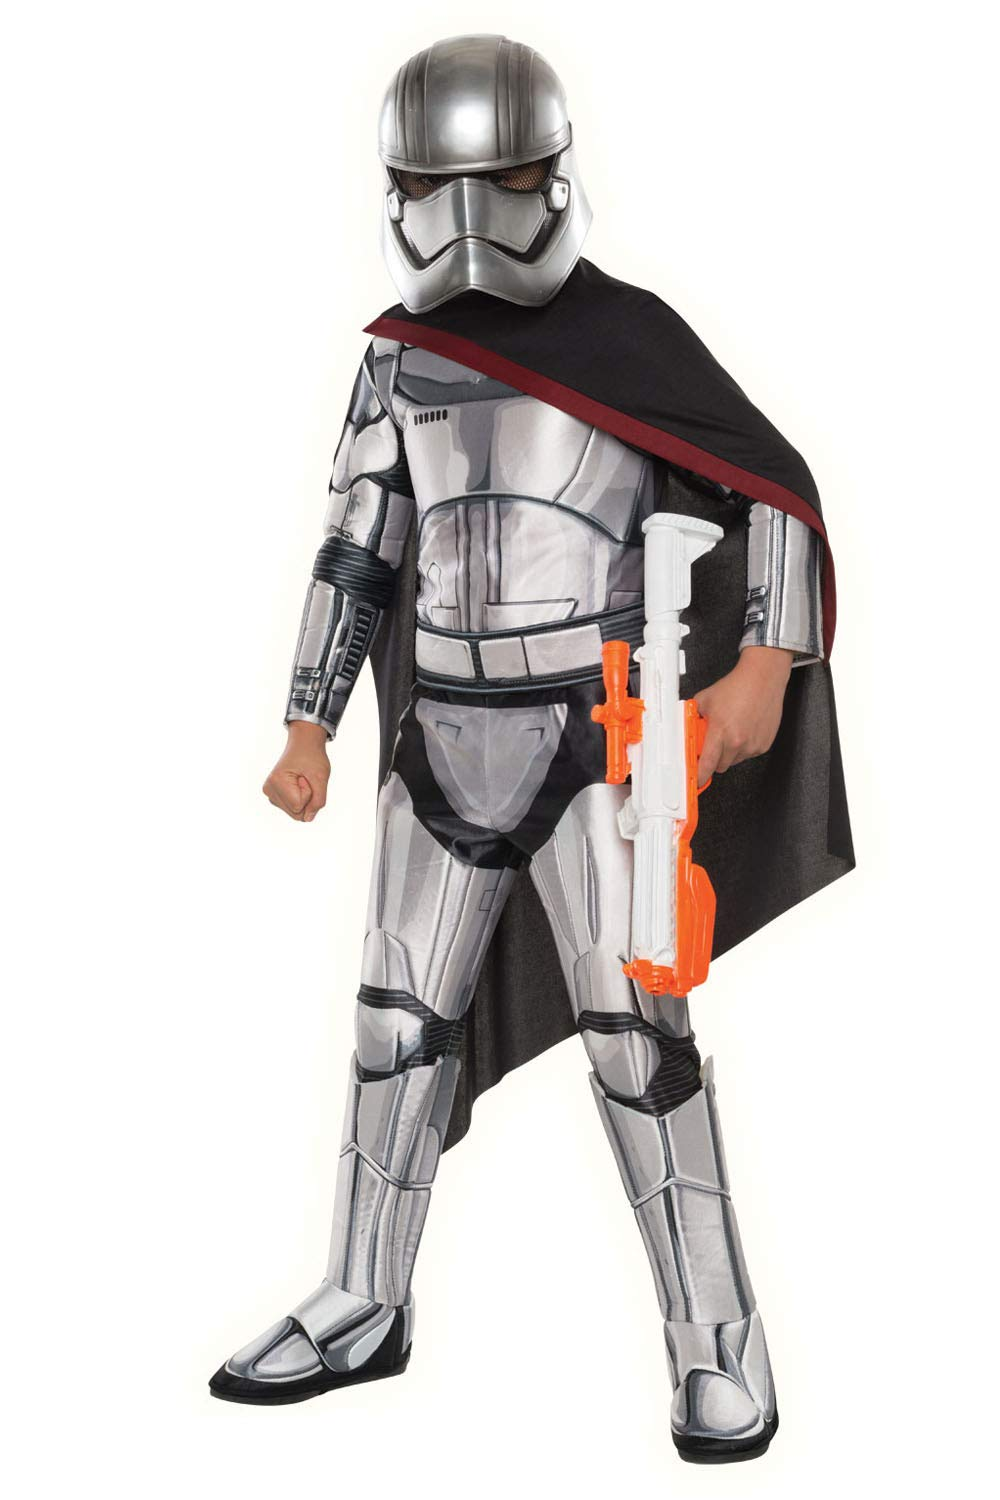 Official Disney Star Wars Captain Phasma Kids Costume Dress Up Outfit 11-12 Yrs